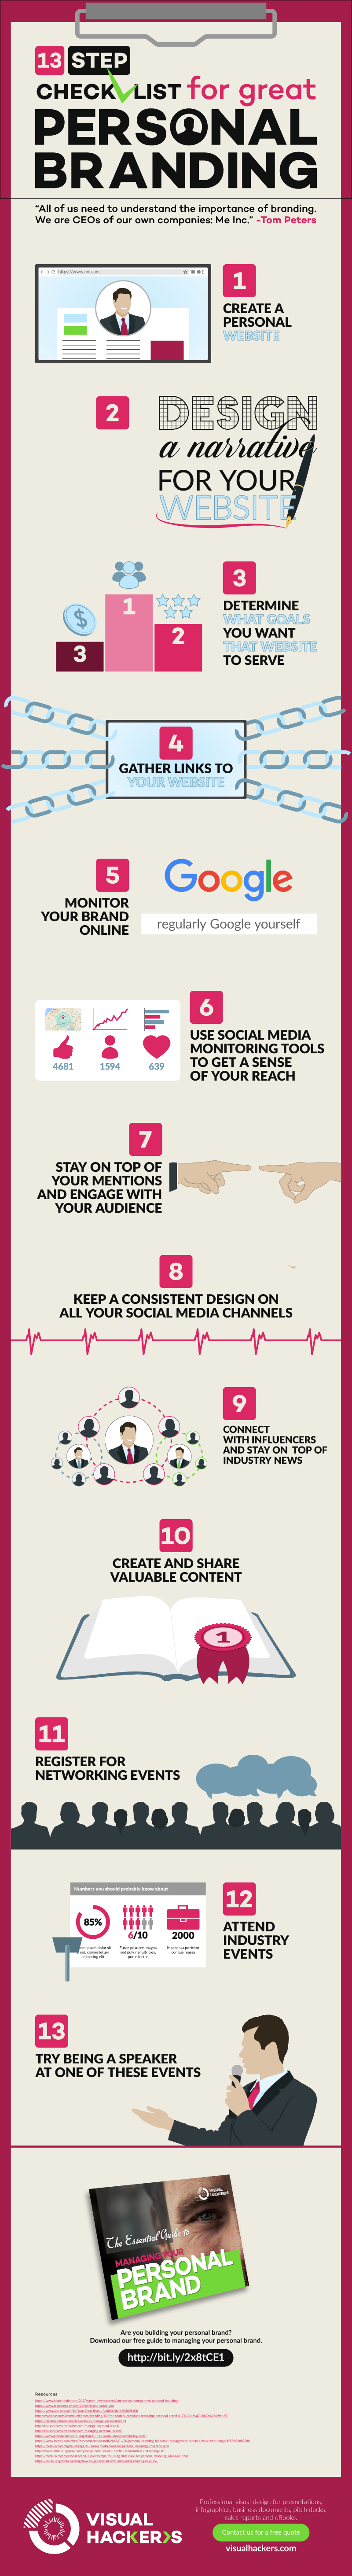 13-Step Checklist For Great Personal Branding